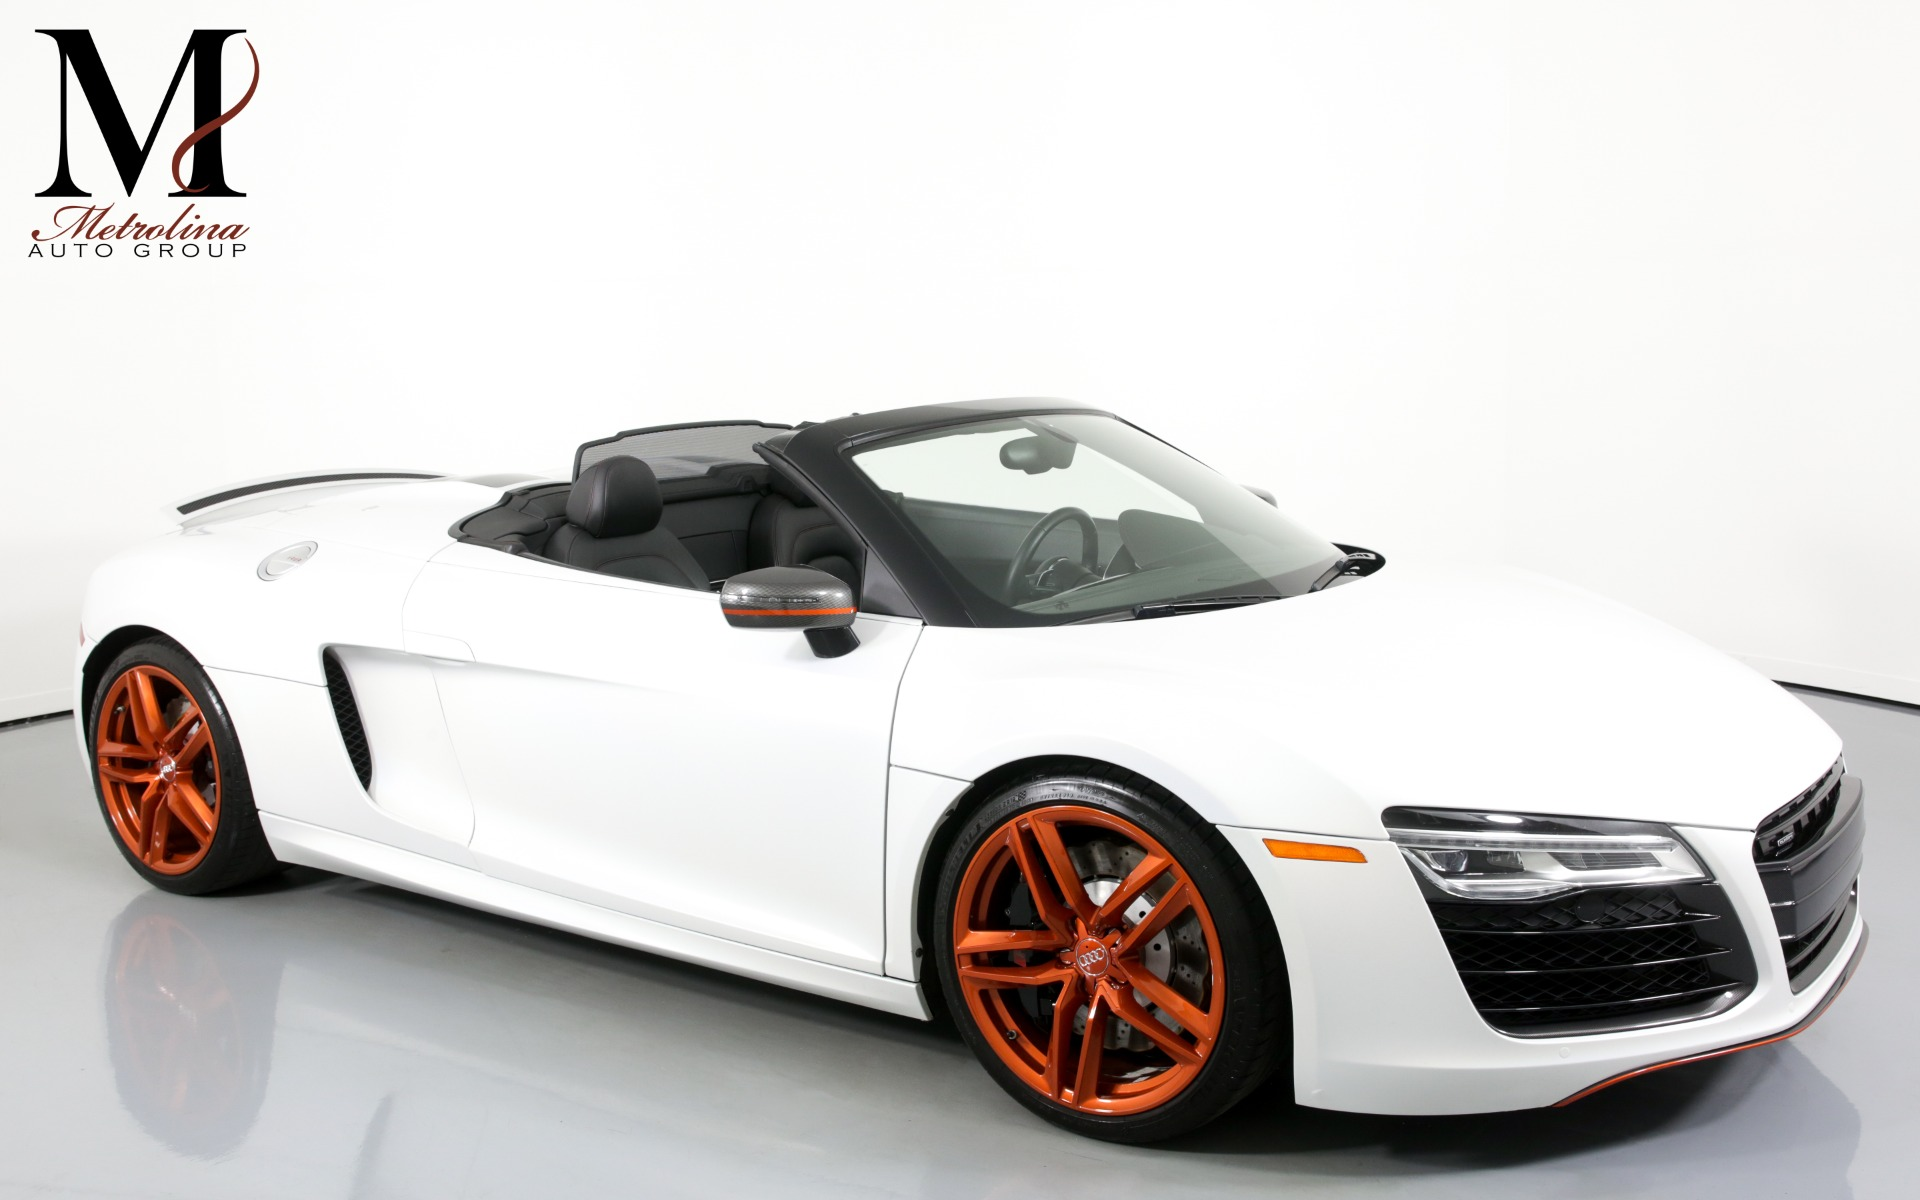 Used 2014 Audi R8 5.2 quattro Spyder for sale $86,996 at Metrolina Auto Group in Charlotte NC 28217 - 1